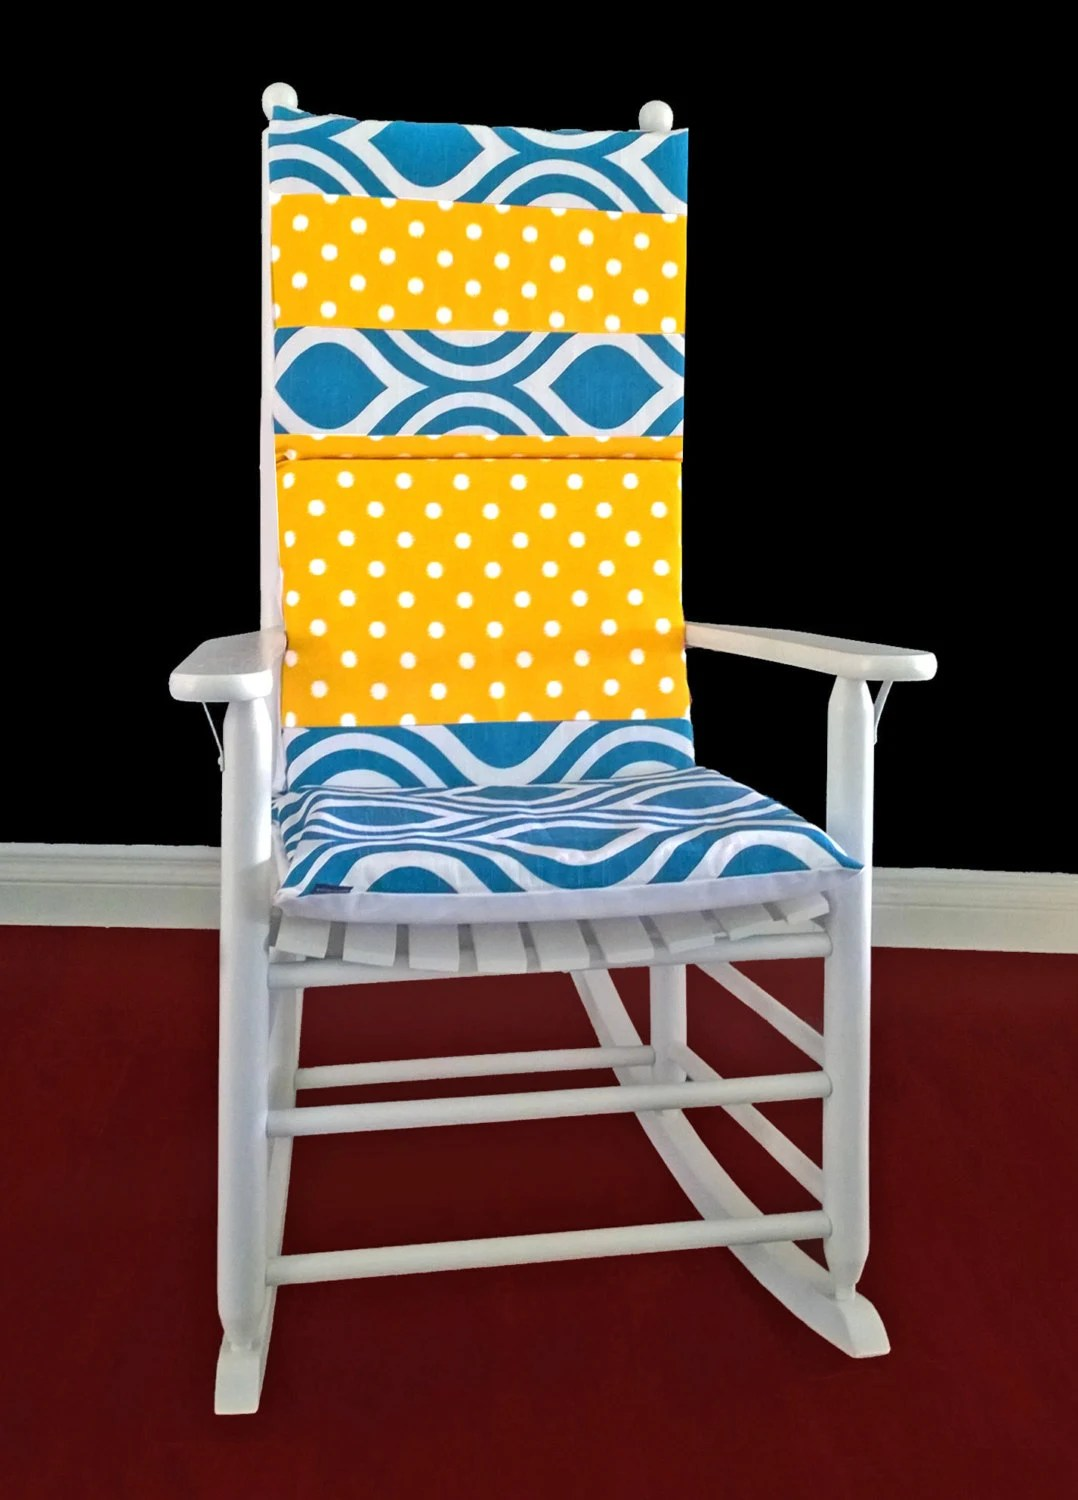 polka dot rocking chair cushions beach chairs at cvs on sale cushion cover blue emily yellow